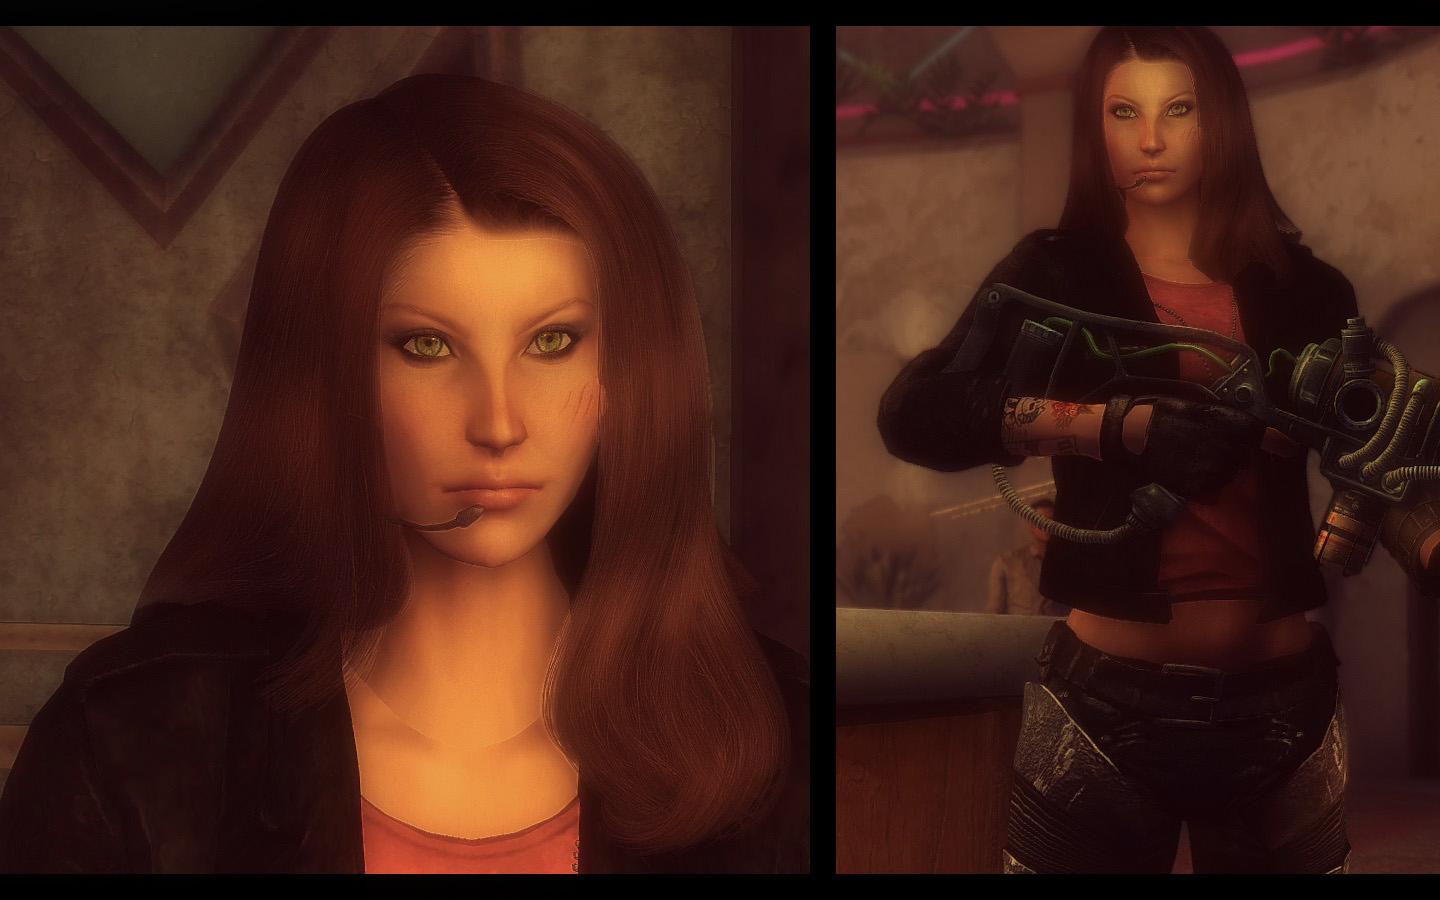 nouks and apachiis hairstyles at fallout new vegas - mods and